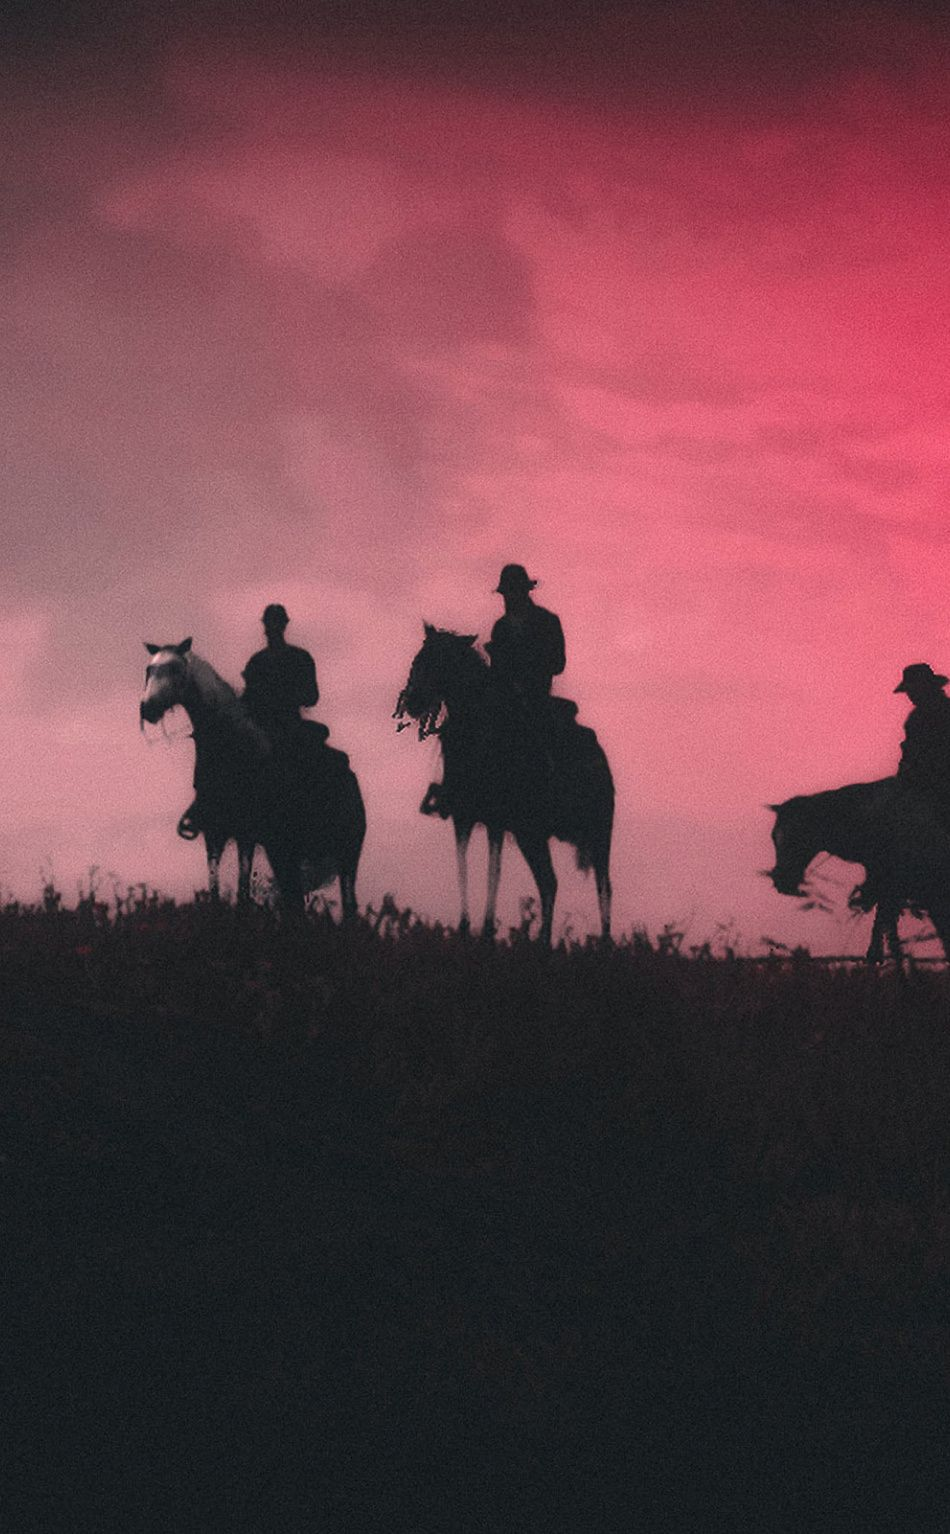 950x1534 Red Dead Redemption 2 Silhouette Video Game 2019 Wallpaper Red Dead Redemption Artwork Red Dead Redemption Red Dead Redemption Art